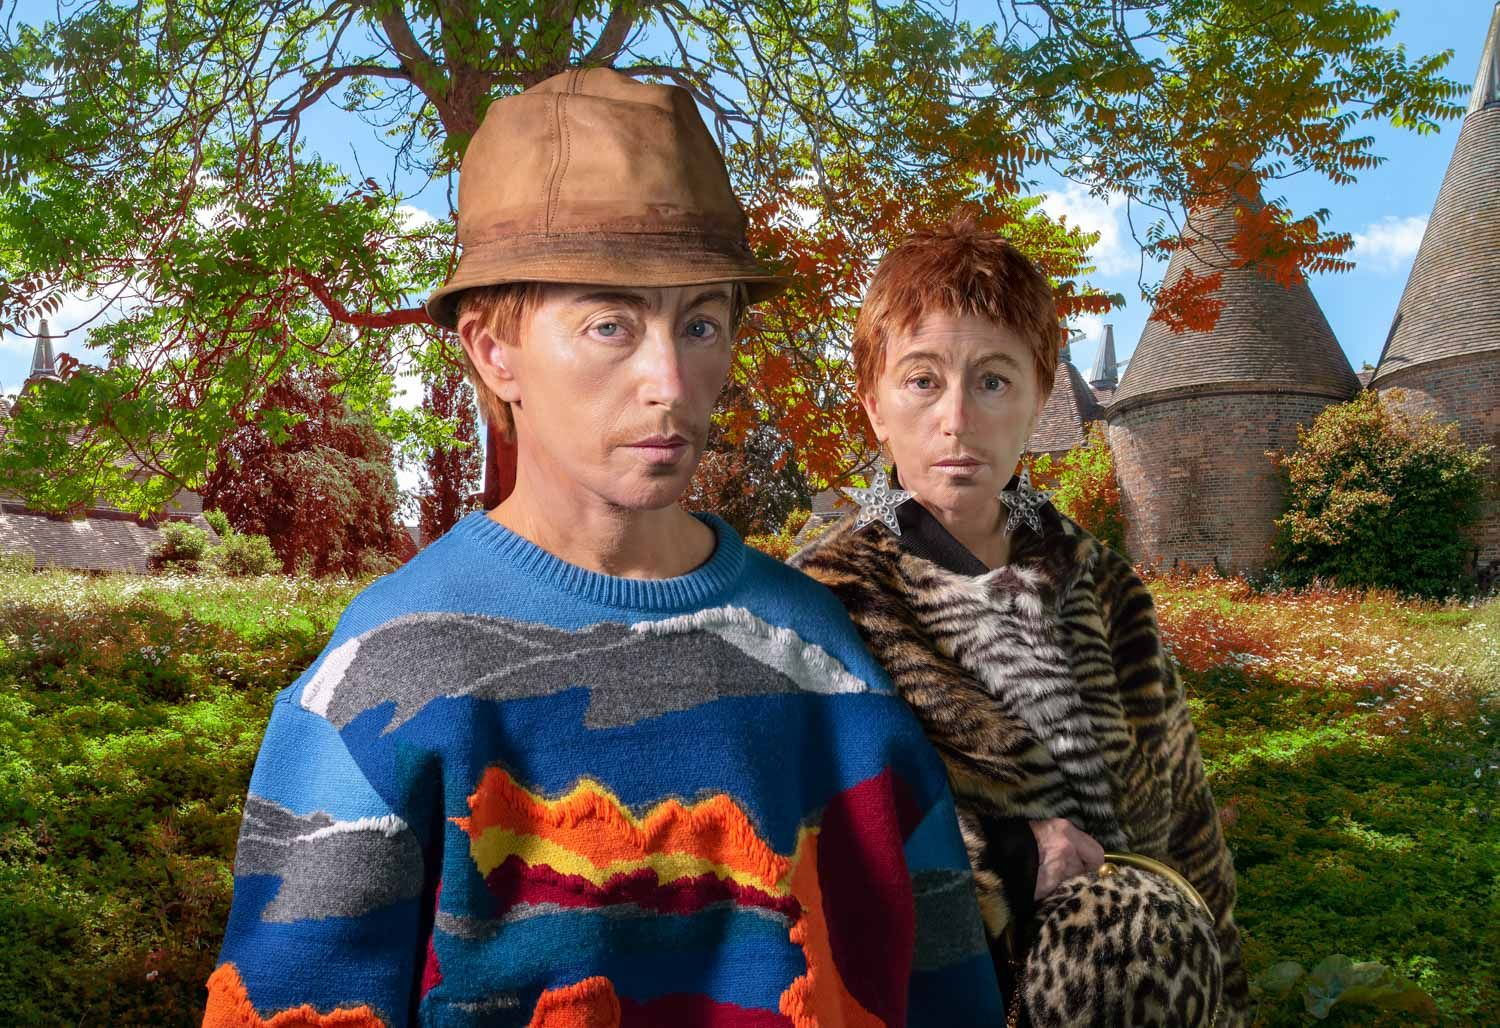 Cindy Sherman dressed as man and woman in fur coats, in front of a green farm-like area playing on Identity, Androgyny and masculinity.